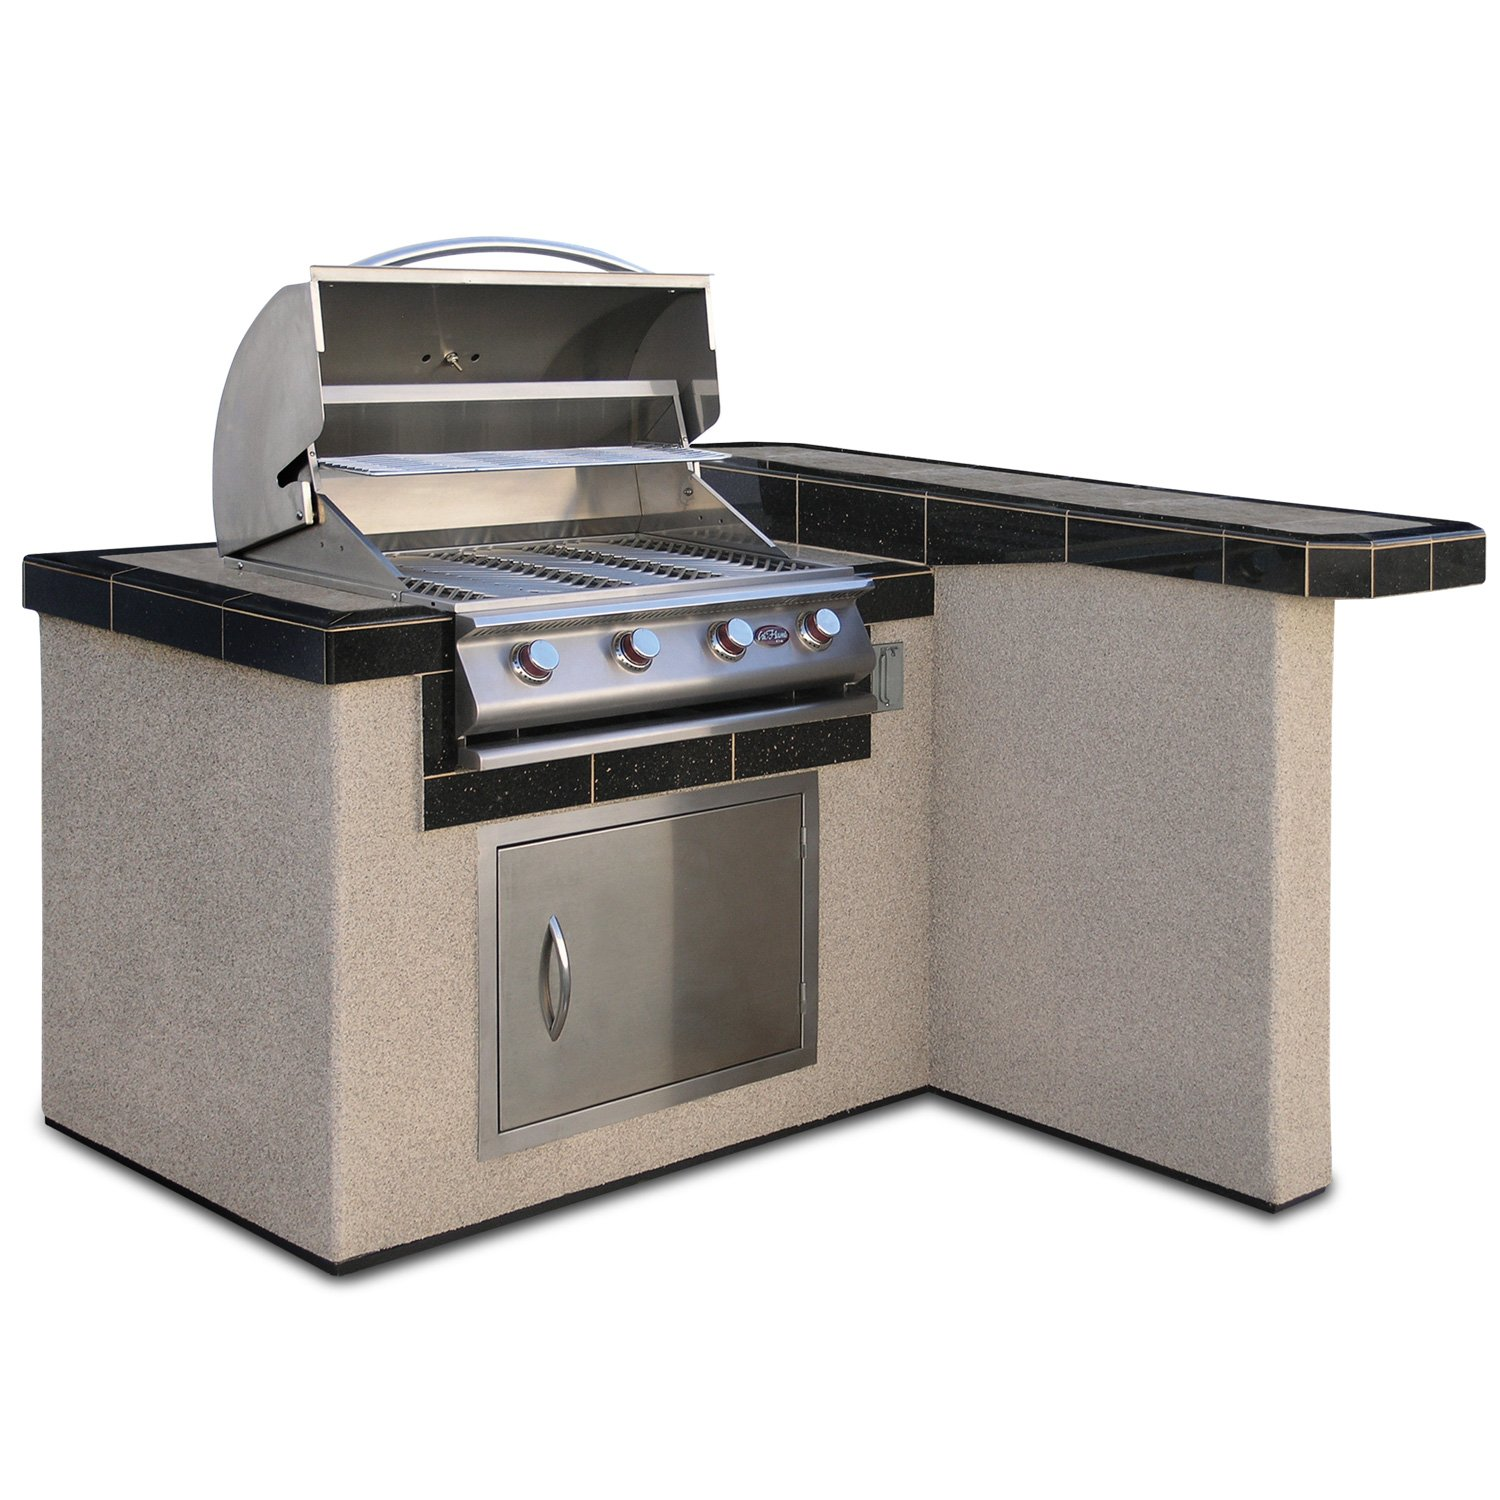 cal flame lbk401 outdoor bbq island with 4 burner